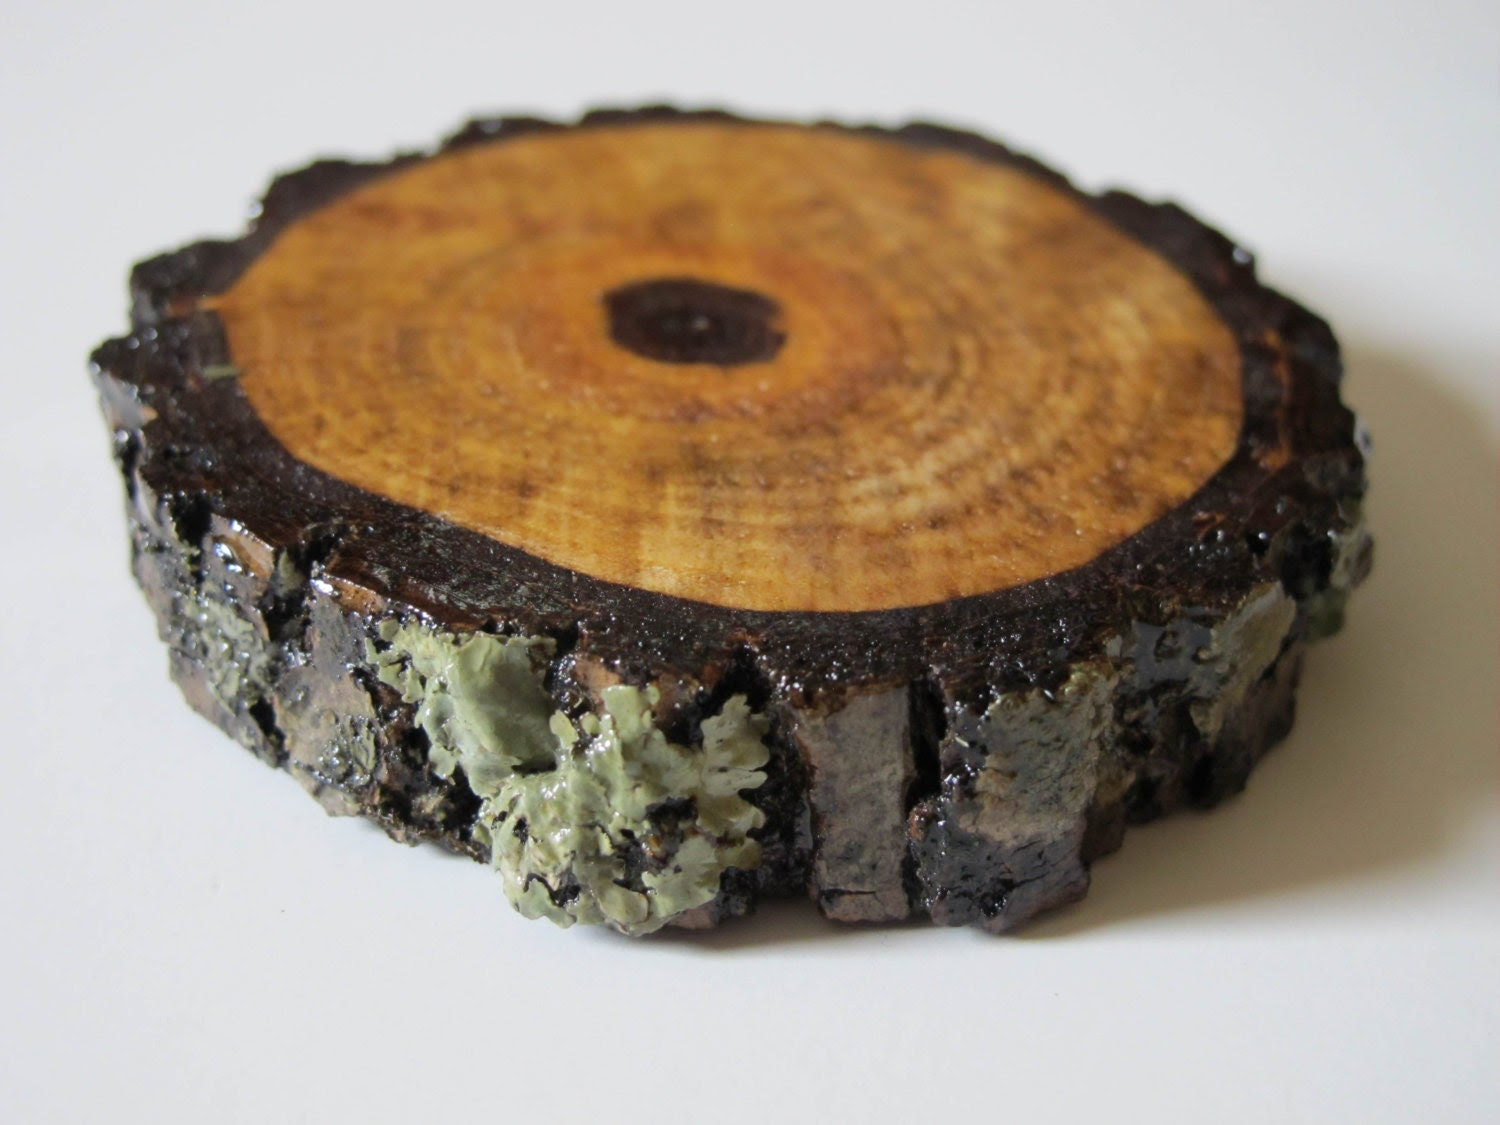 Set of Four Natural Wooden Coasters- Handmade from Salvaged Black Walnut- Recycled Felt Bottom